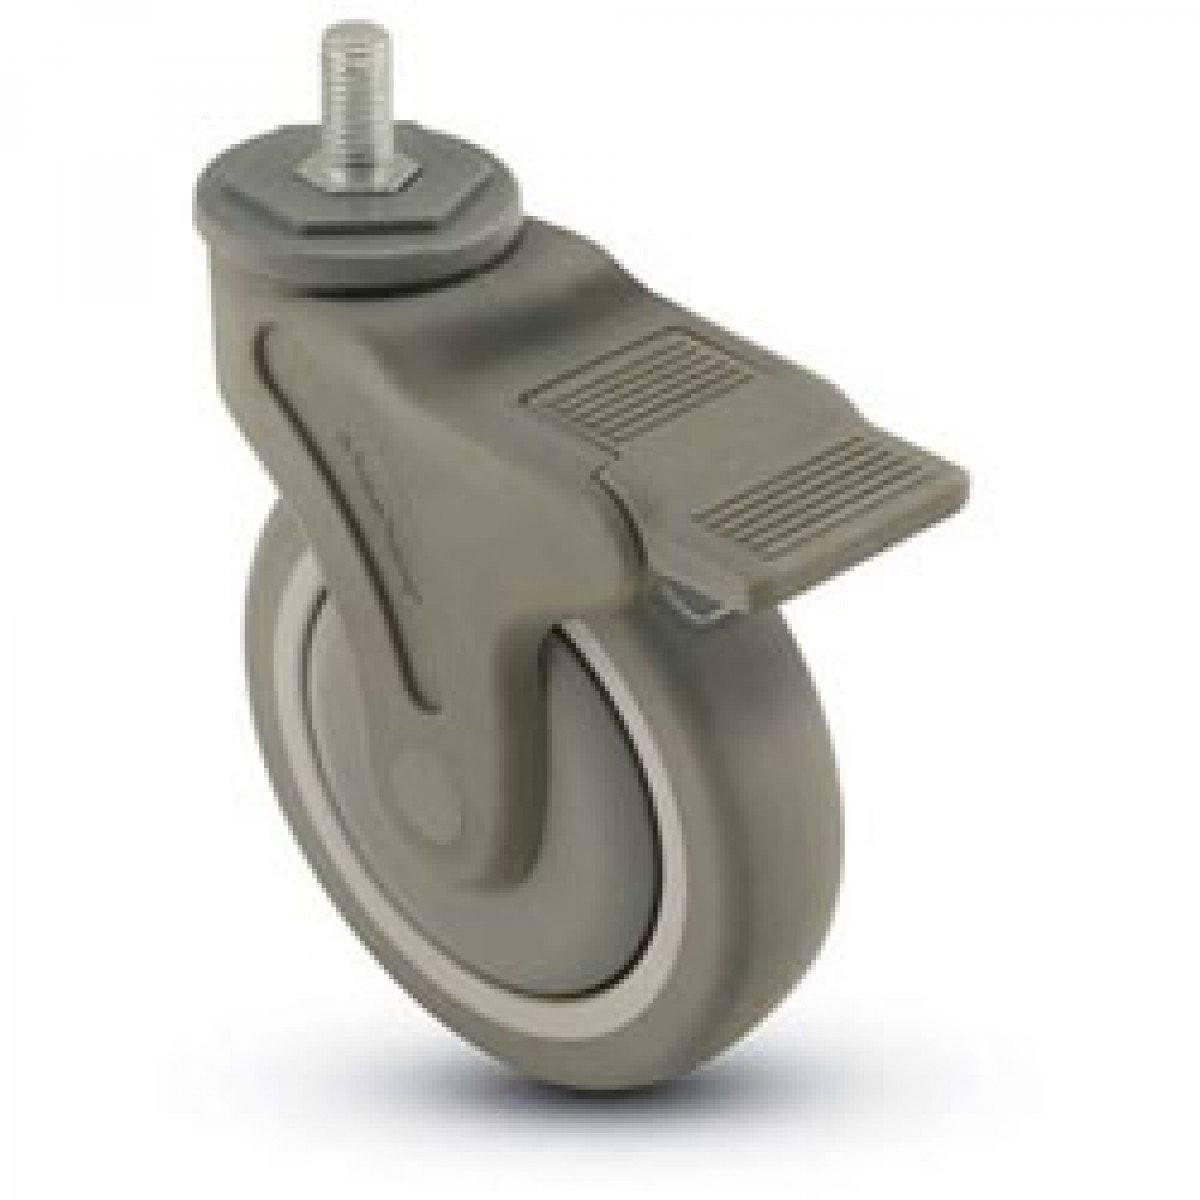 Pvc Shower Chair Casters For Shower Chairs Casters For Commode Chairs